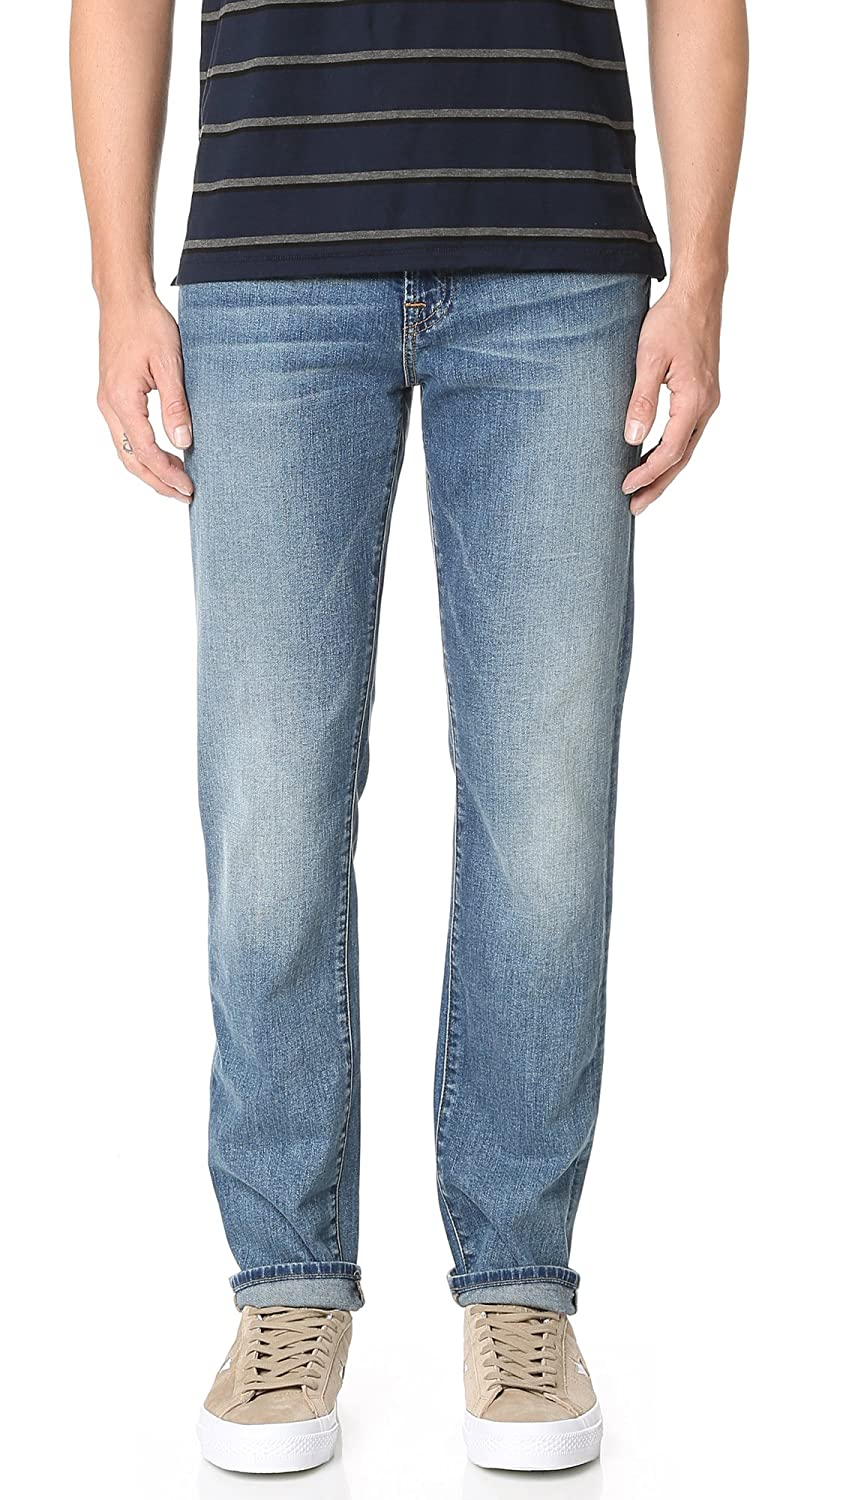 7 For All Mankind Men's Slimmy Slim Straight Foolproof Denim Jeans